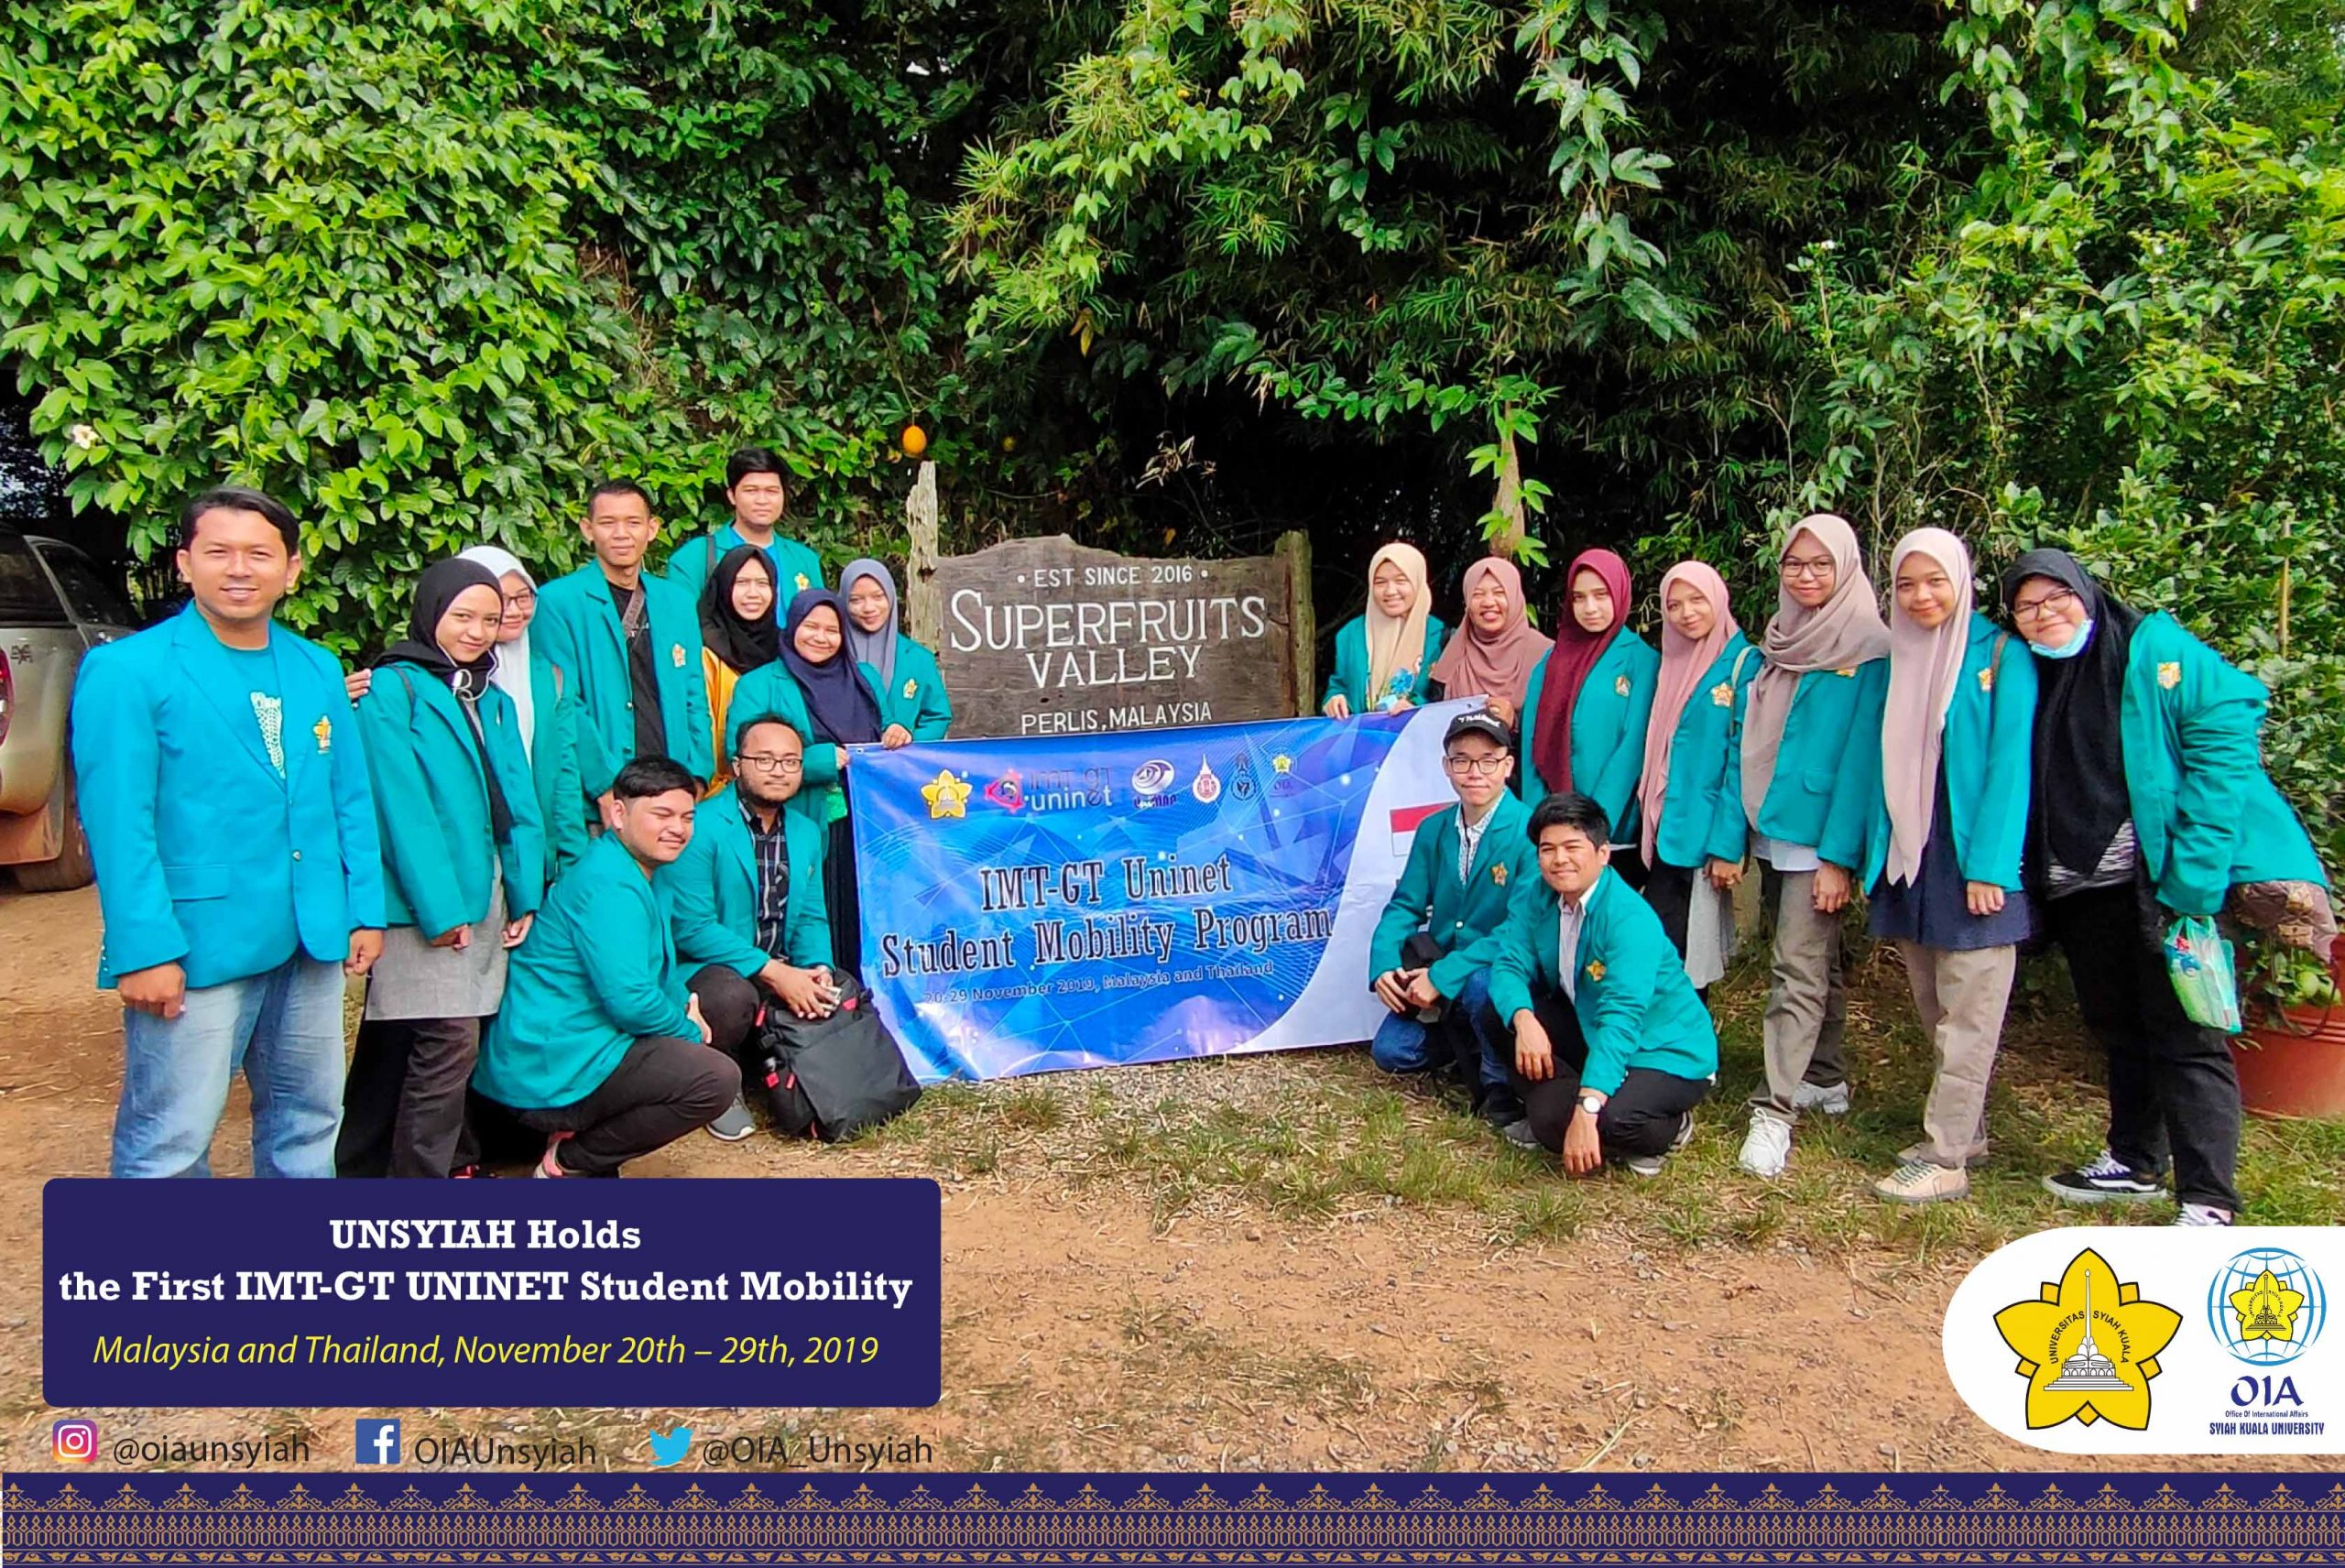 UNSYIAH Holds the First IMT-GT UNINET Student Mobility in Malaysia and Thailand